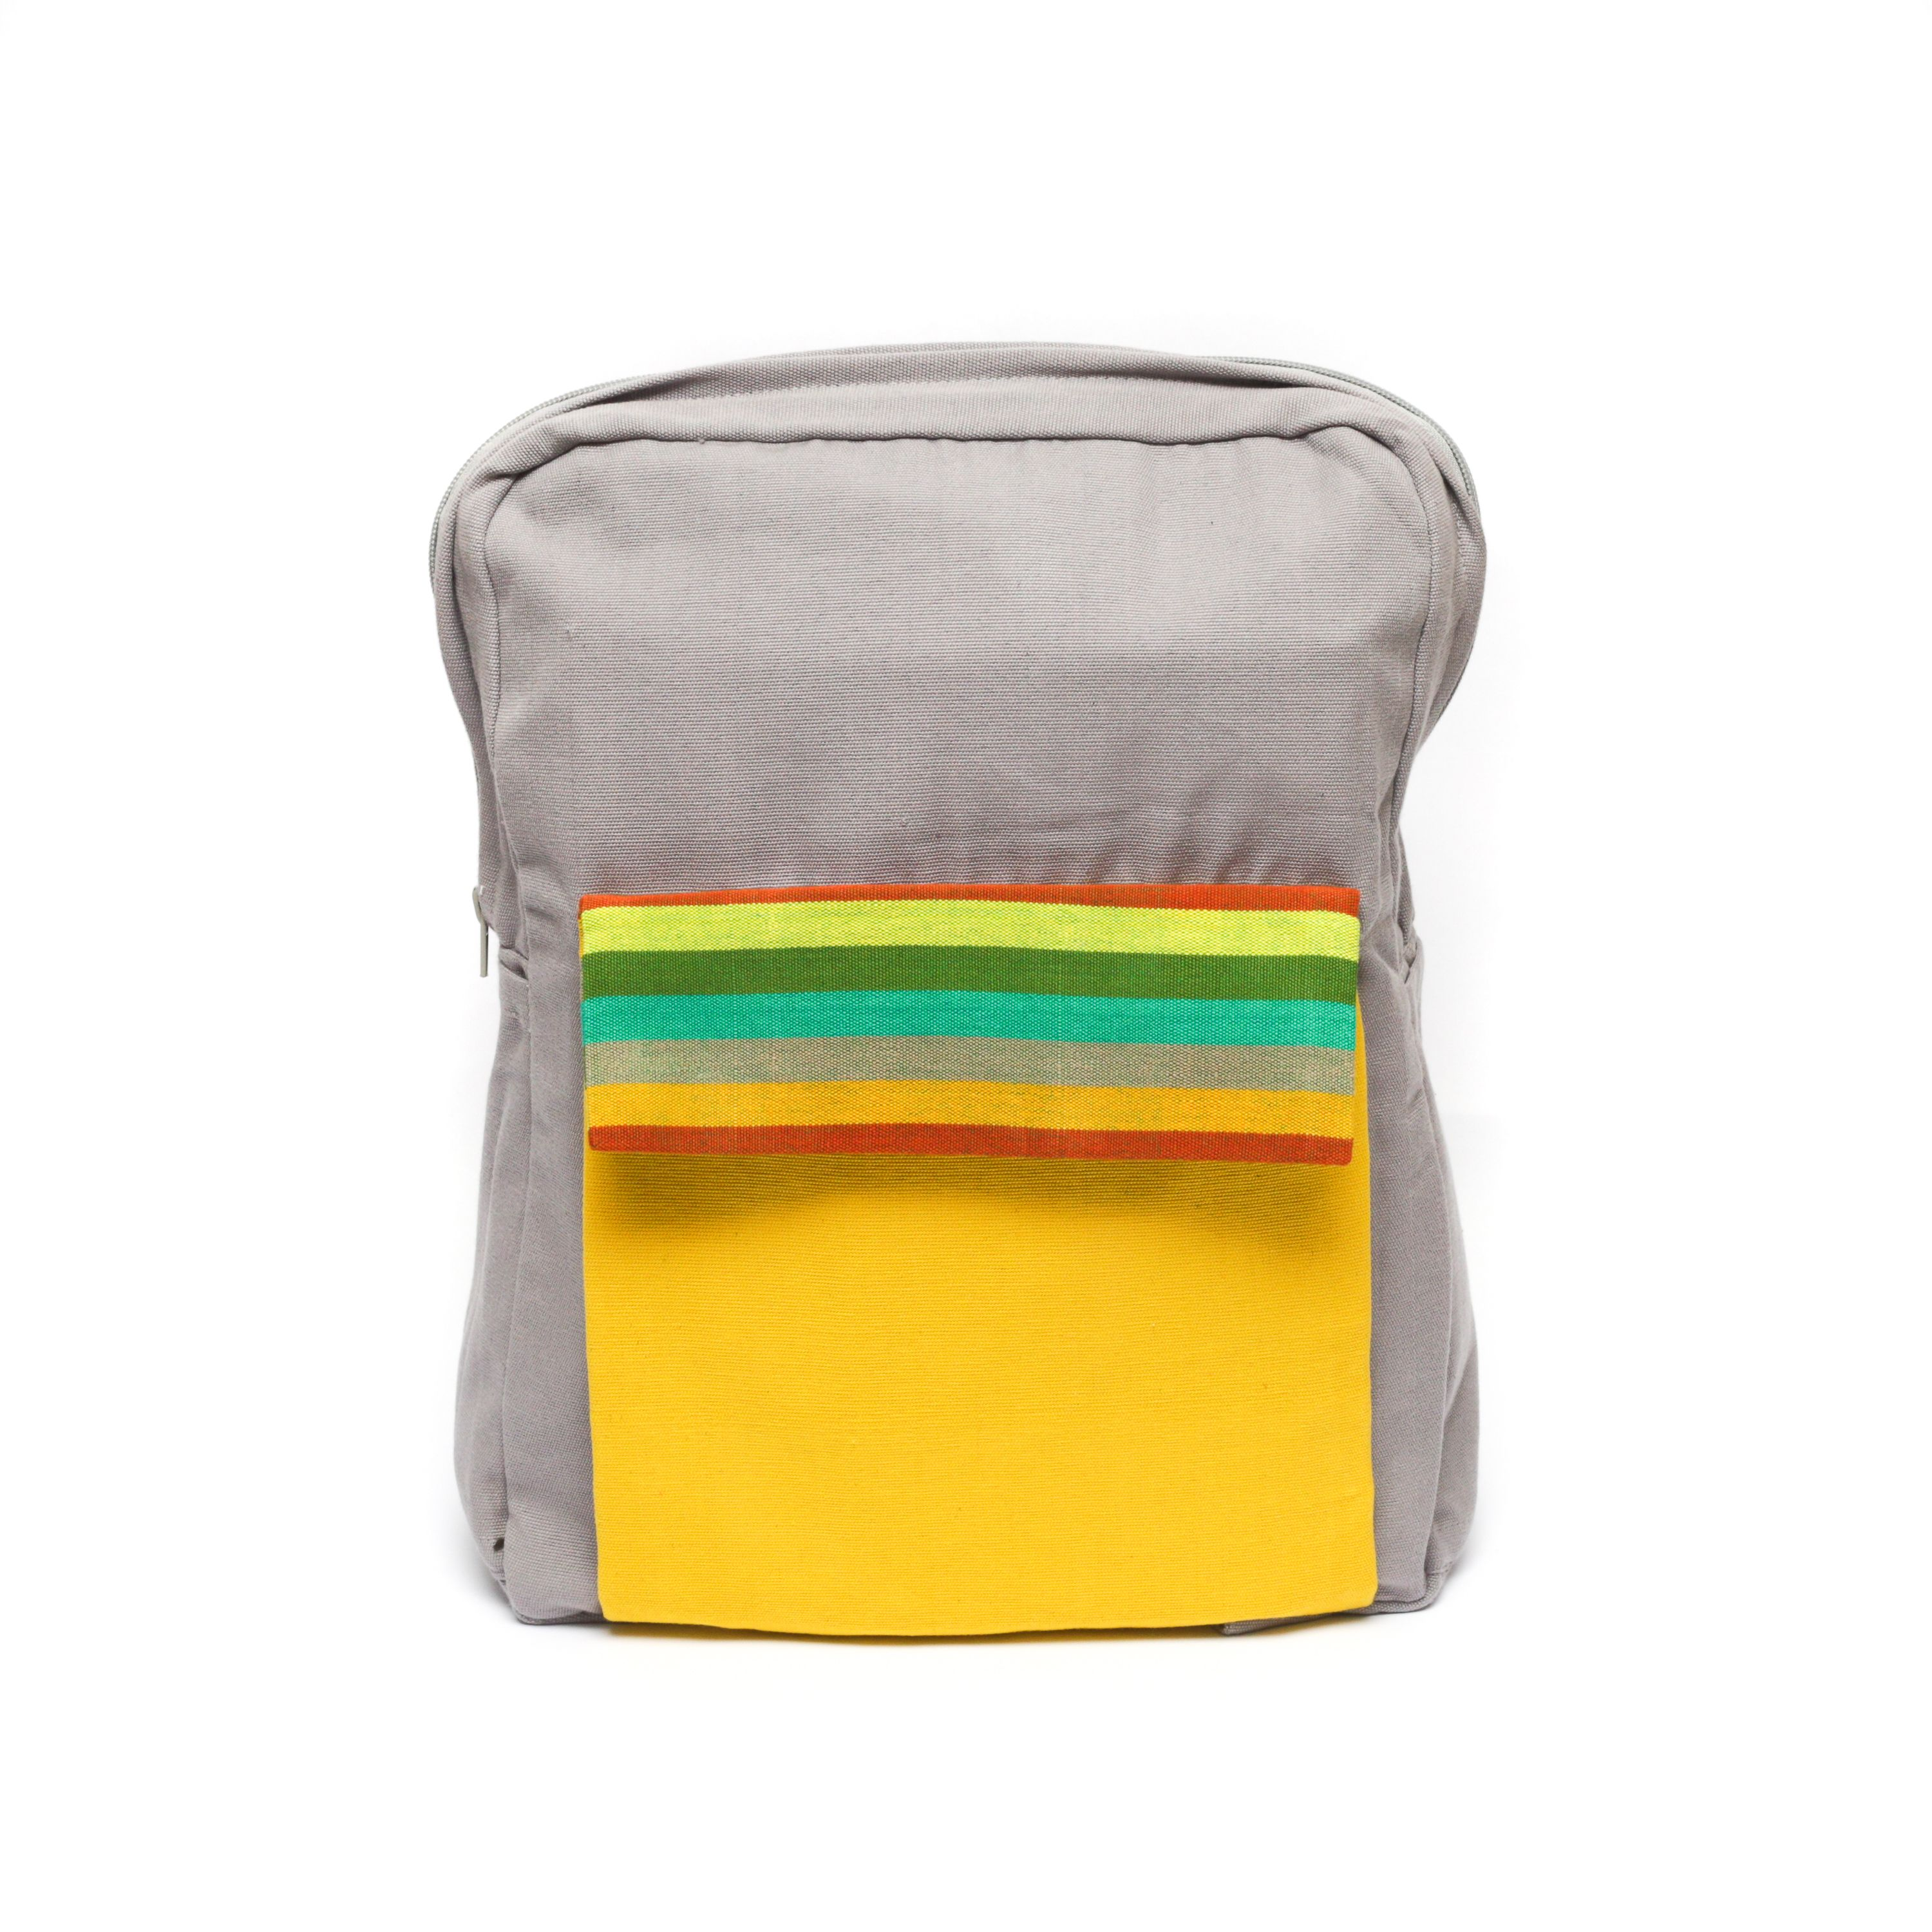 Backpack - Gray handloom material back pack with pops of yellow and colored stripes.  Convenient pouch on front of bag and adjustable straps for ideal comfort and convenience. Spacious interor to transport your various items.